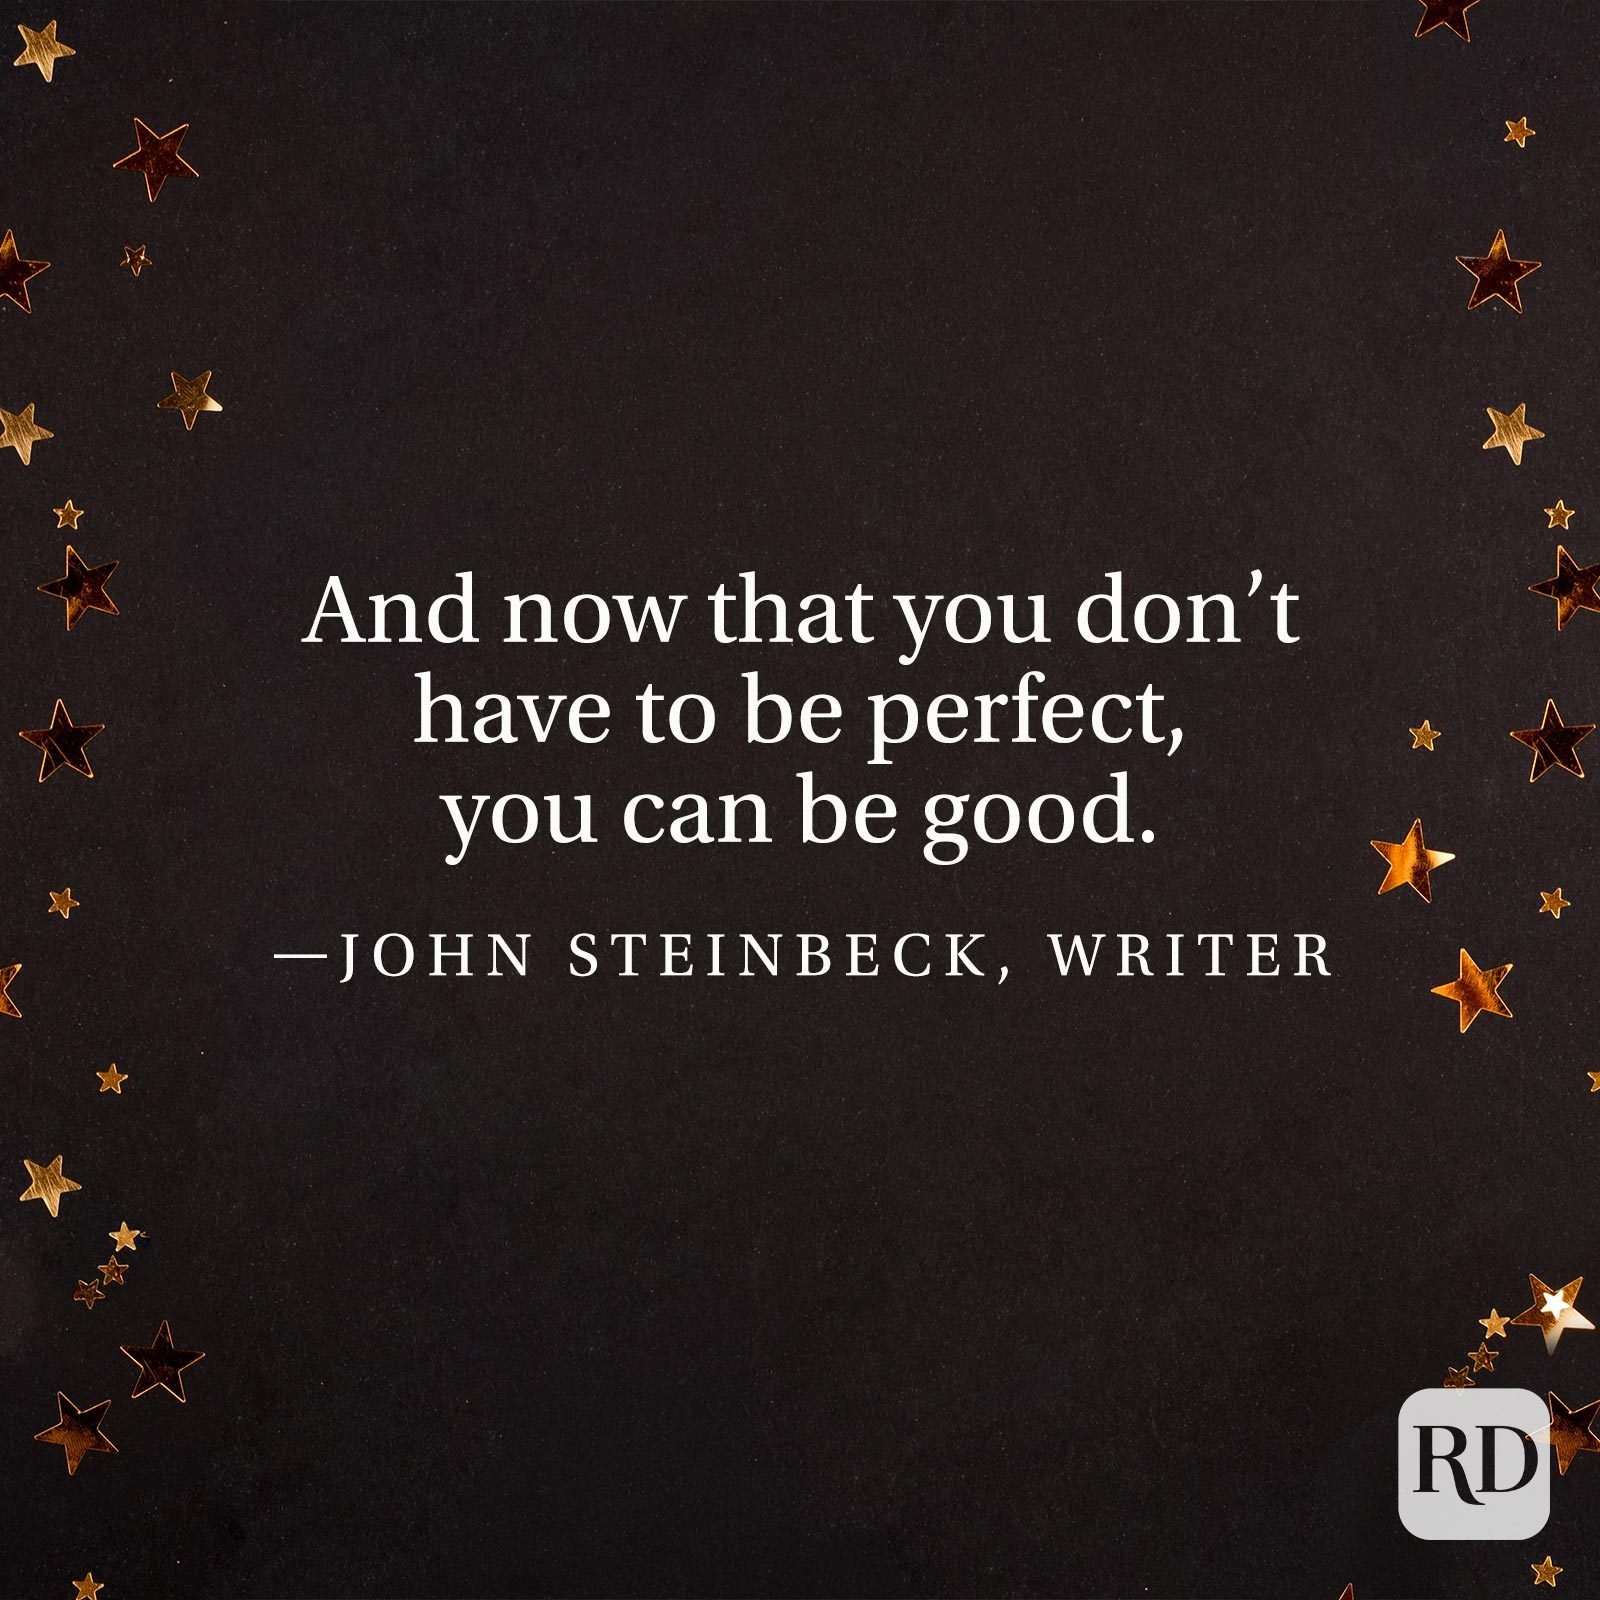 """""""And now that you don't have to be perfect, you can be good."""" —John Steinbeck, writer"""